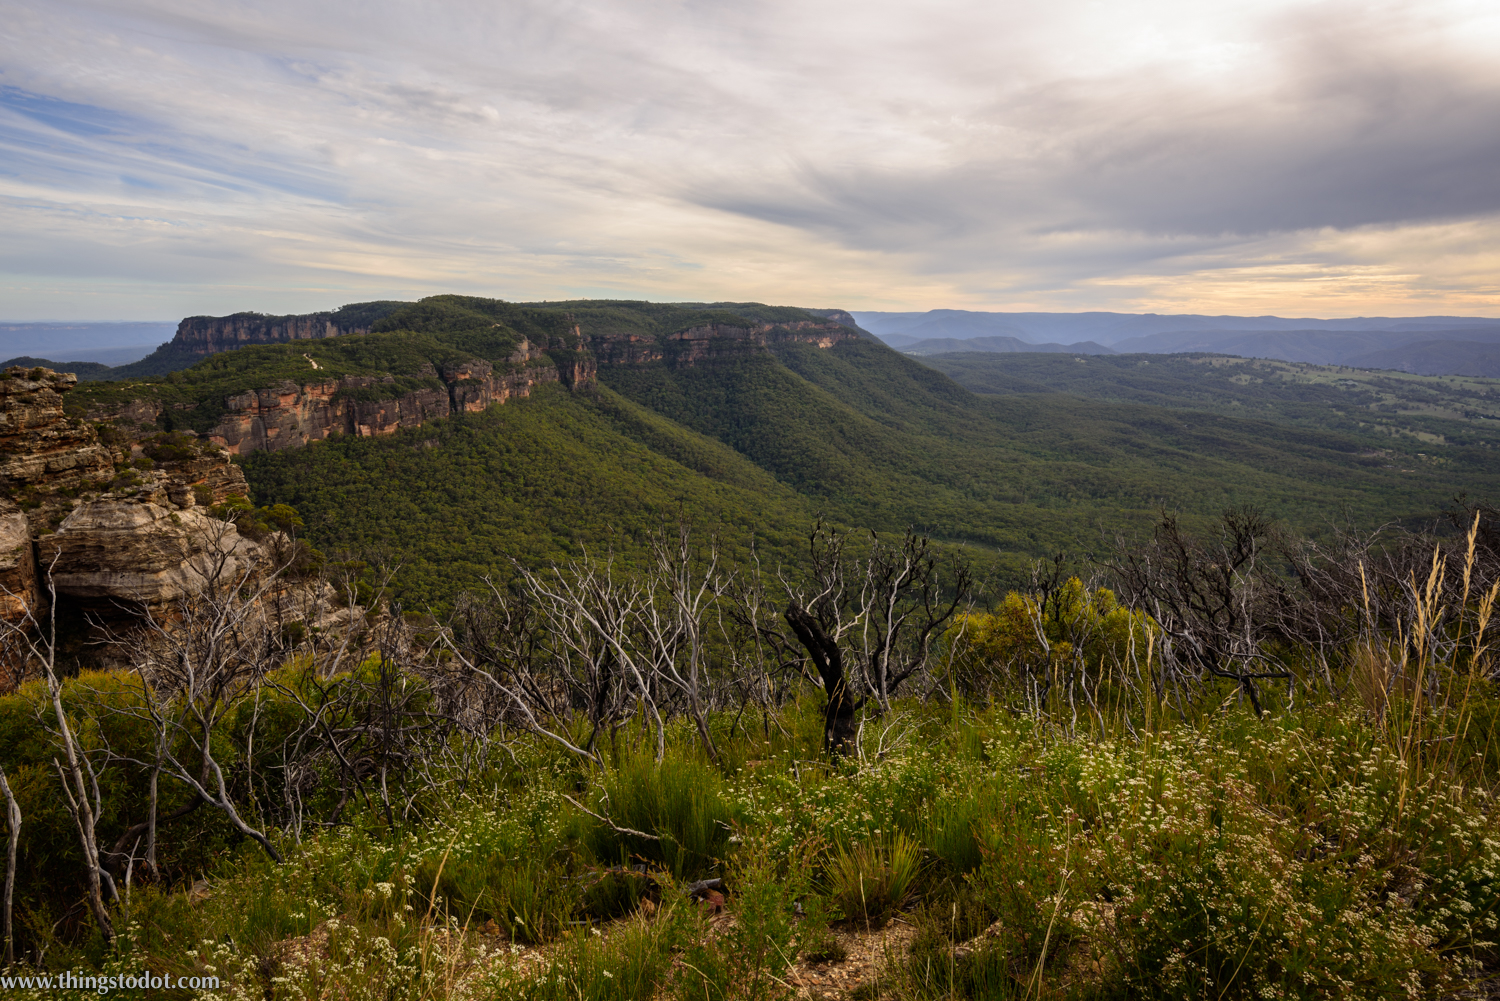 Blue Mountains, Cahill's Lookout, New South Wales, Australia. Photo: Gunjan Virk. Image©www.thingstodot.com.